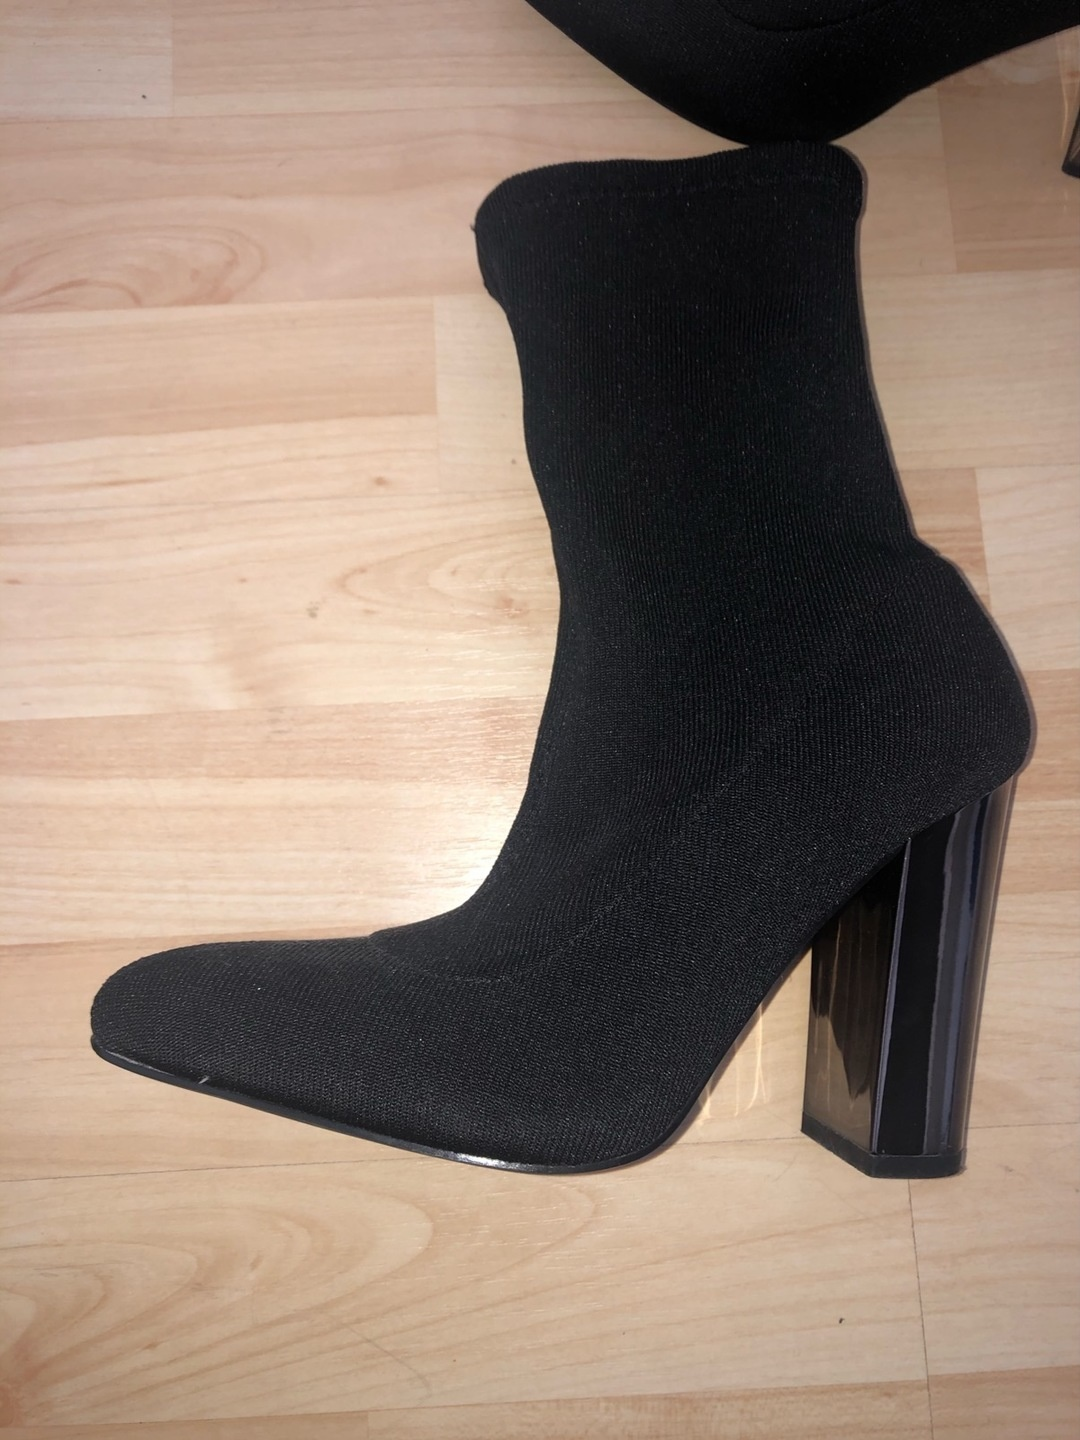 Women's boots - ASOS photo 1